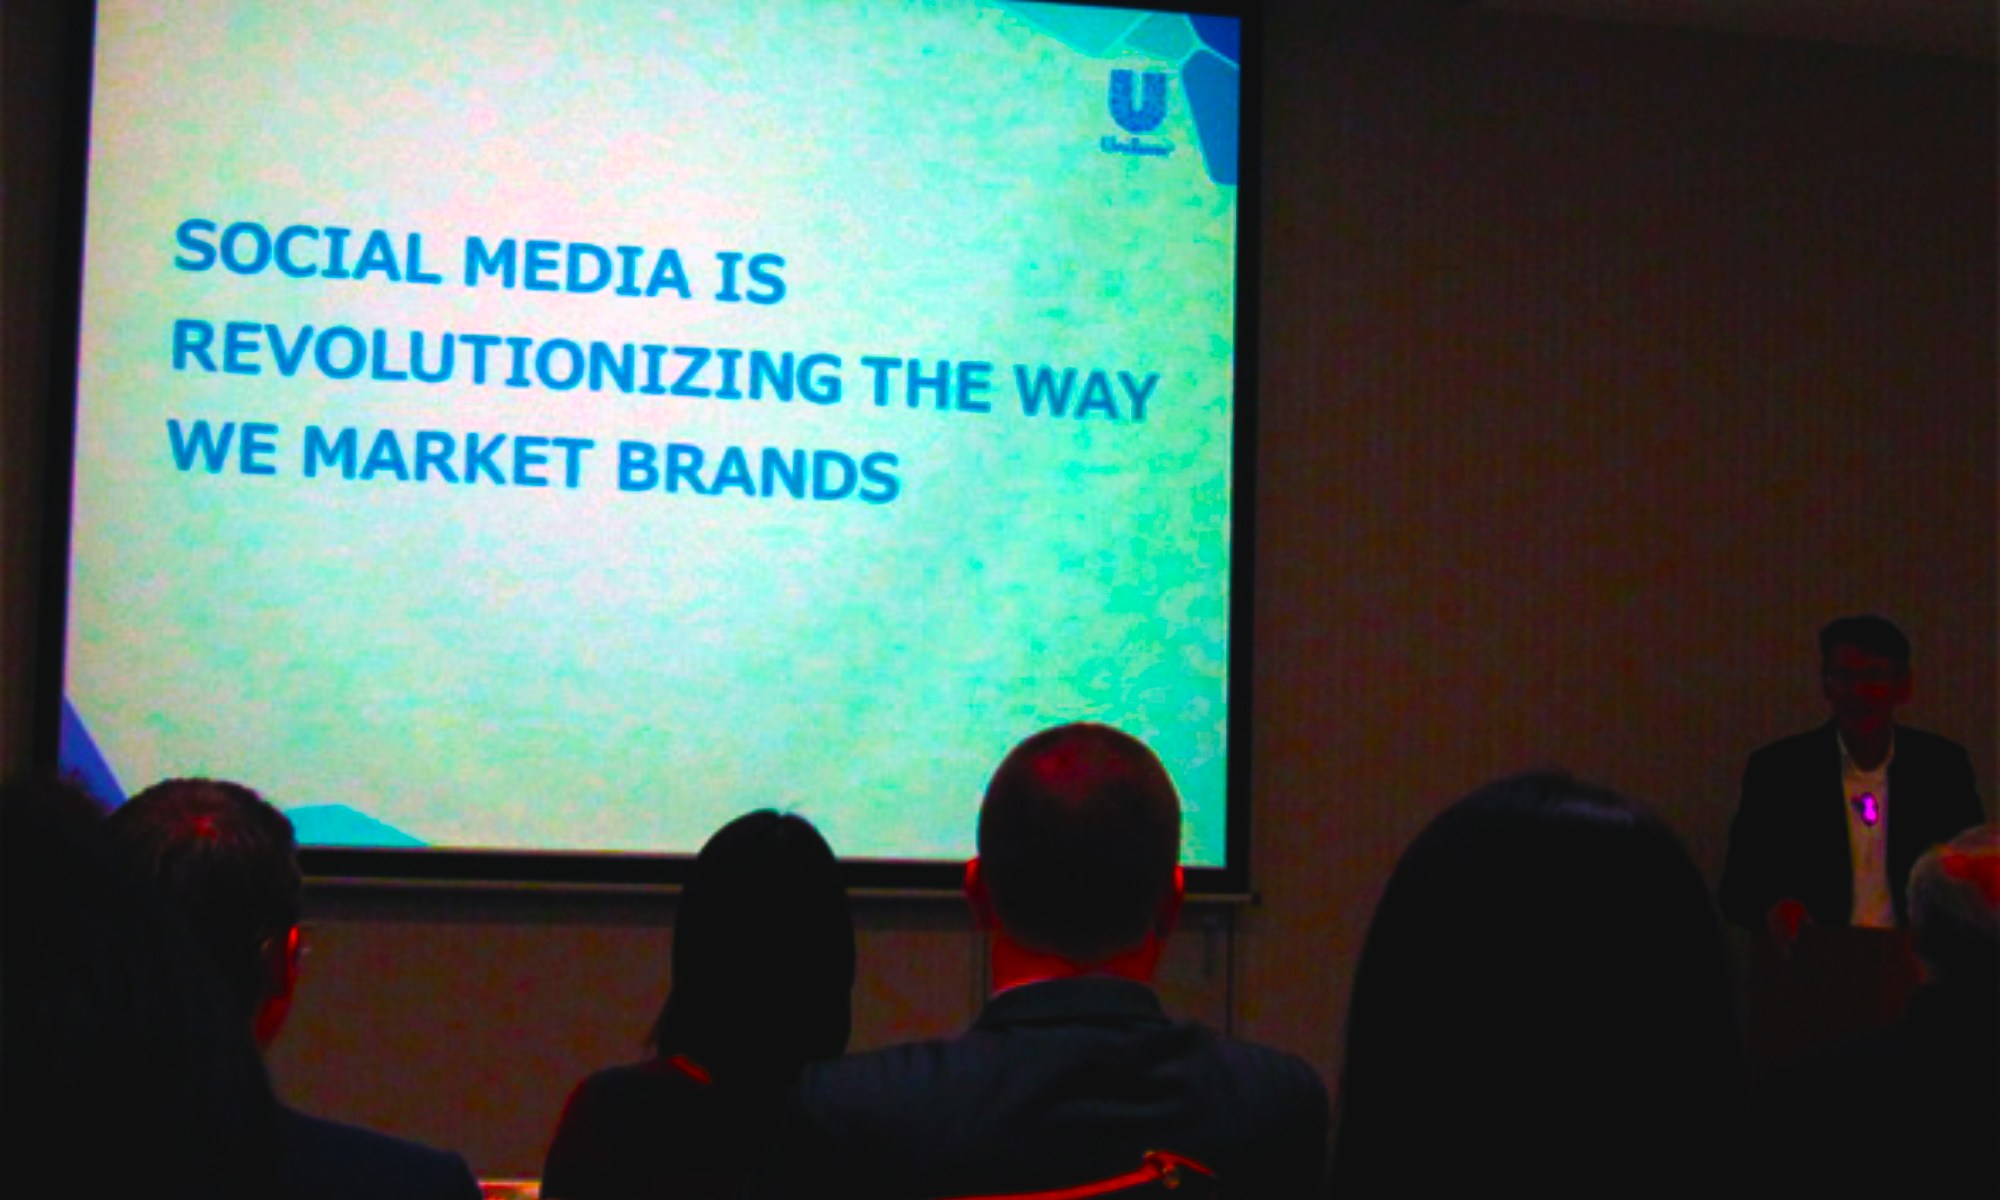 Social media revolutionize how we market brands (Ray Bremner, President & CEO, Unilever Japan)